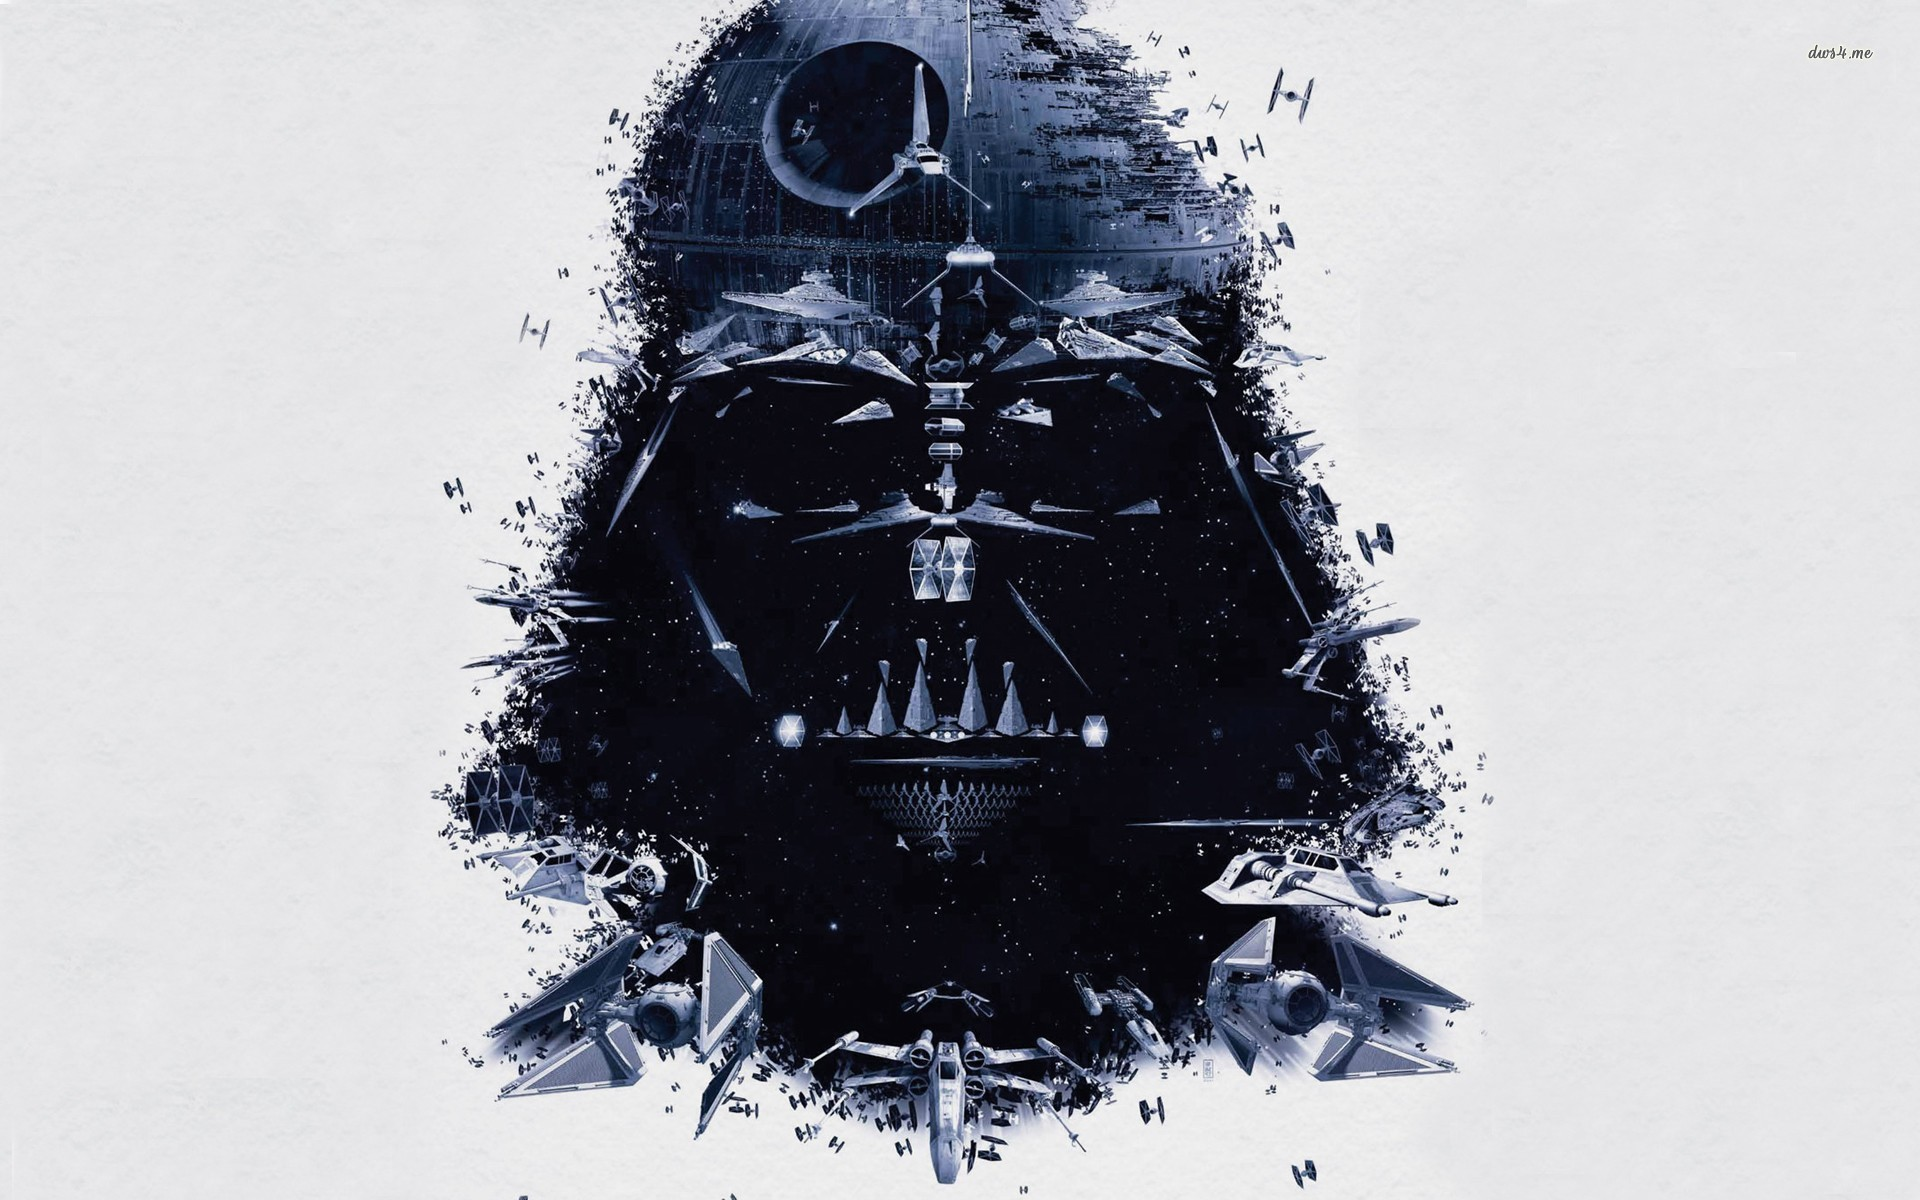 Darth Vader Wallpaper (5)